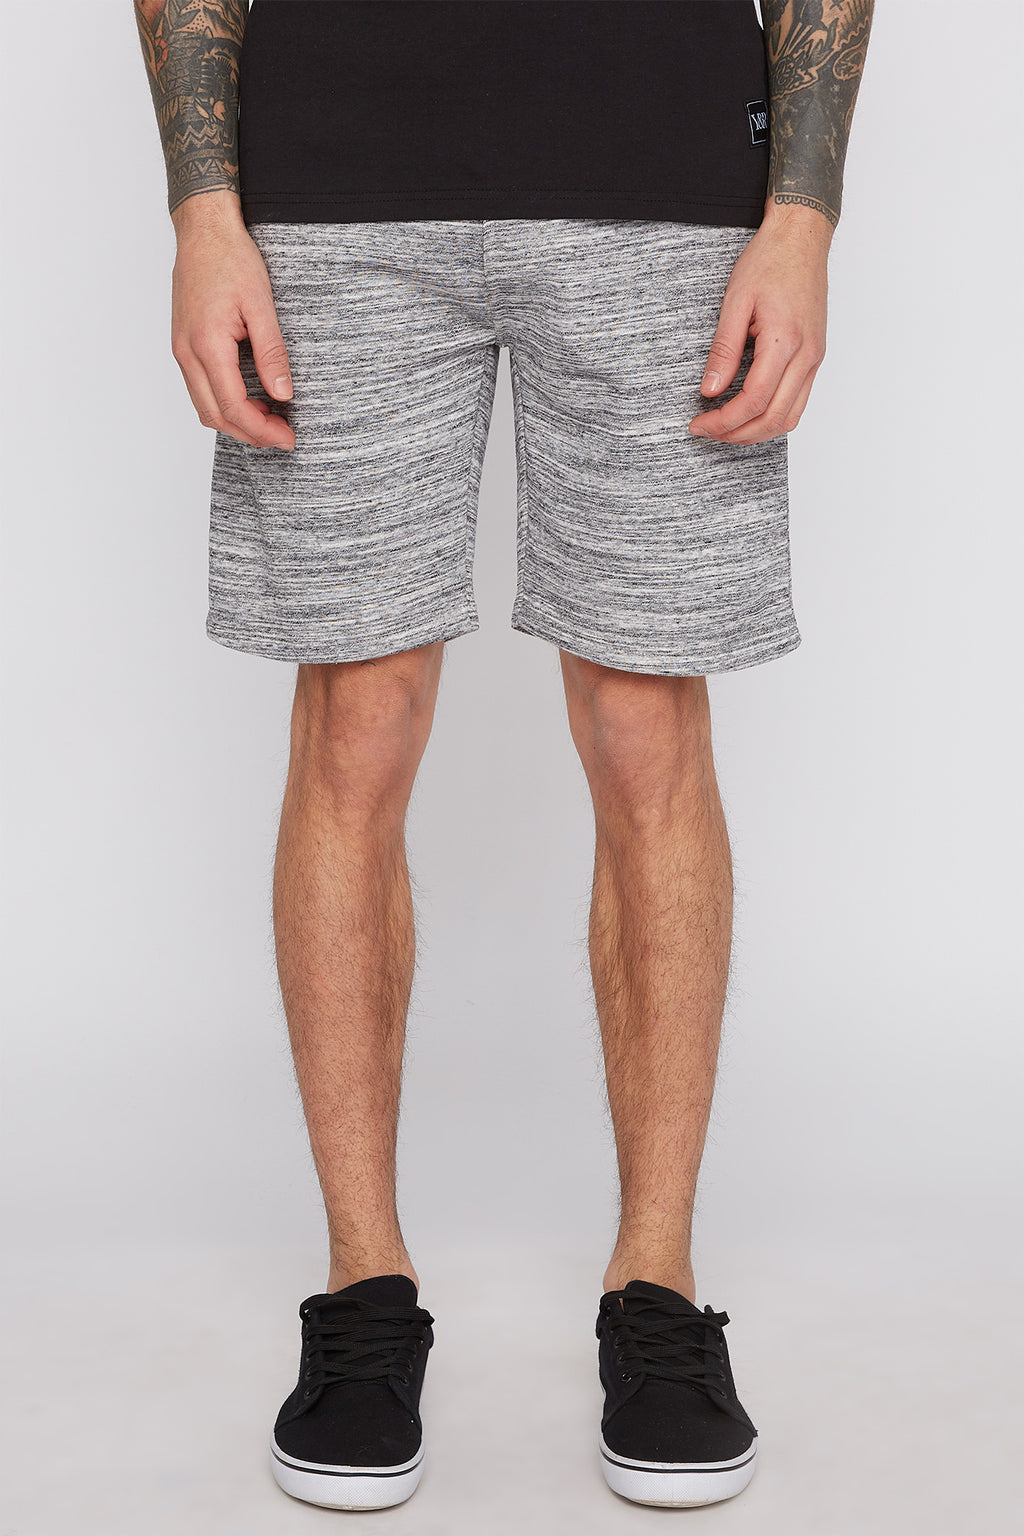 West49 Mens Fleece Shorts